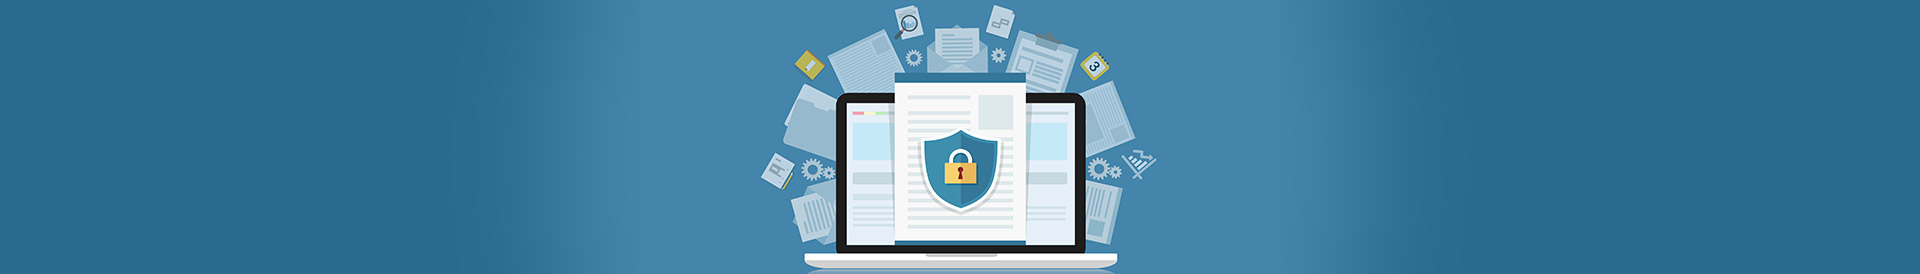 Data Security Statement for Clients